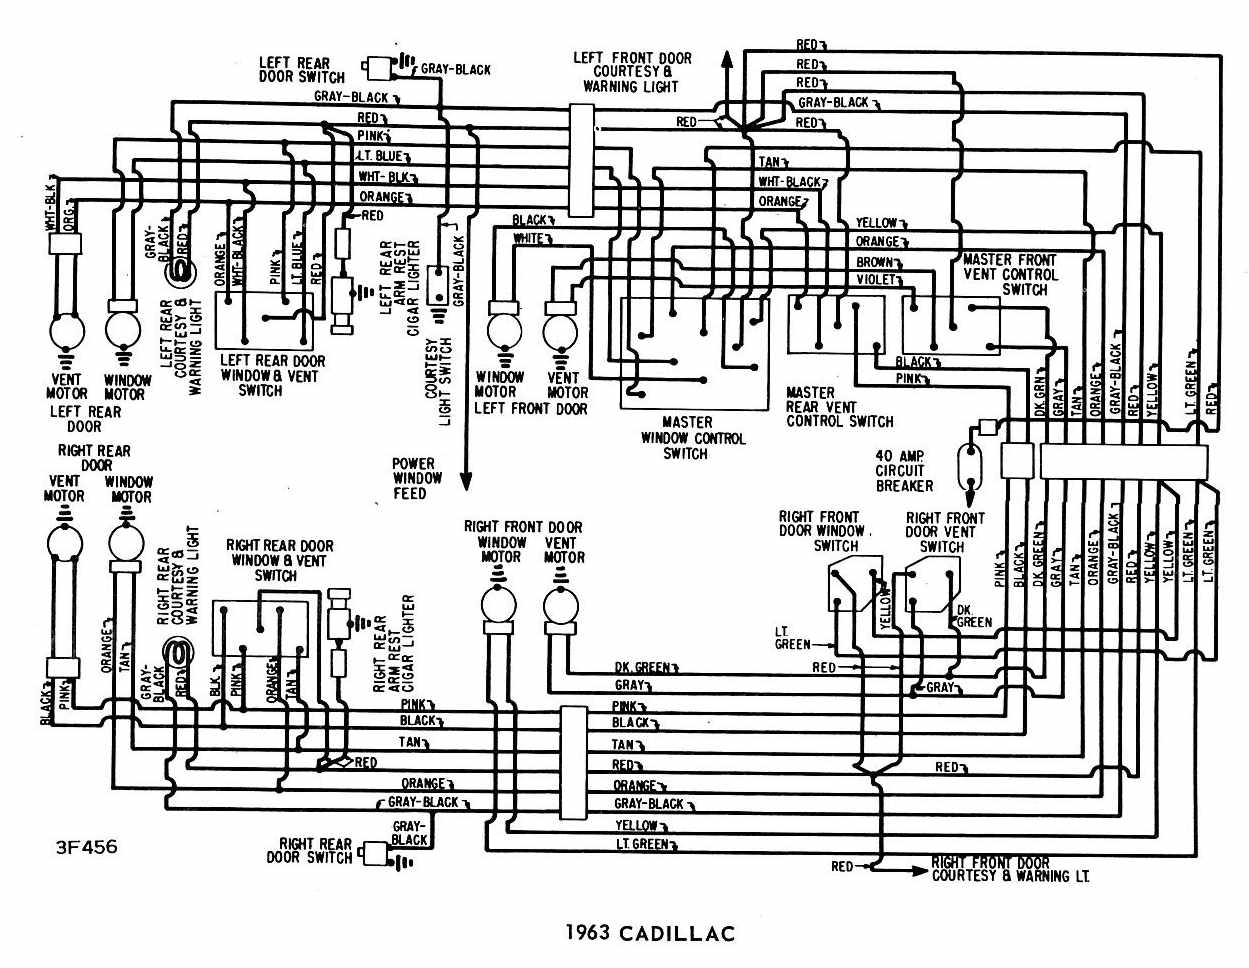 1966 ford falcon ranchero wiring diagram [ 1249 x 968 Pixel ]